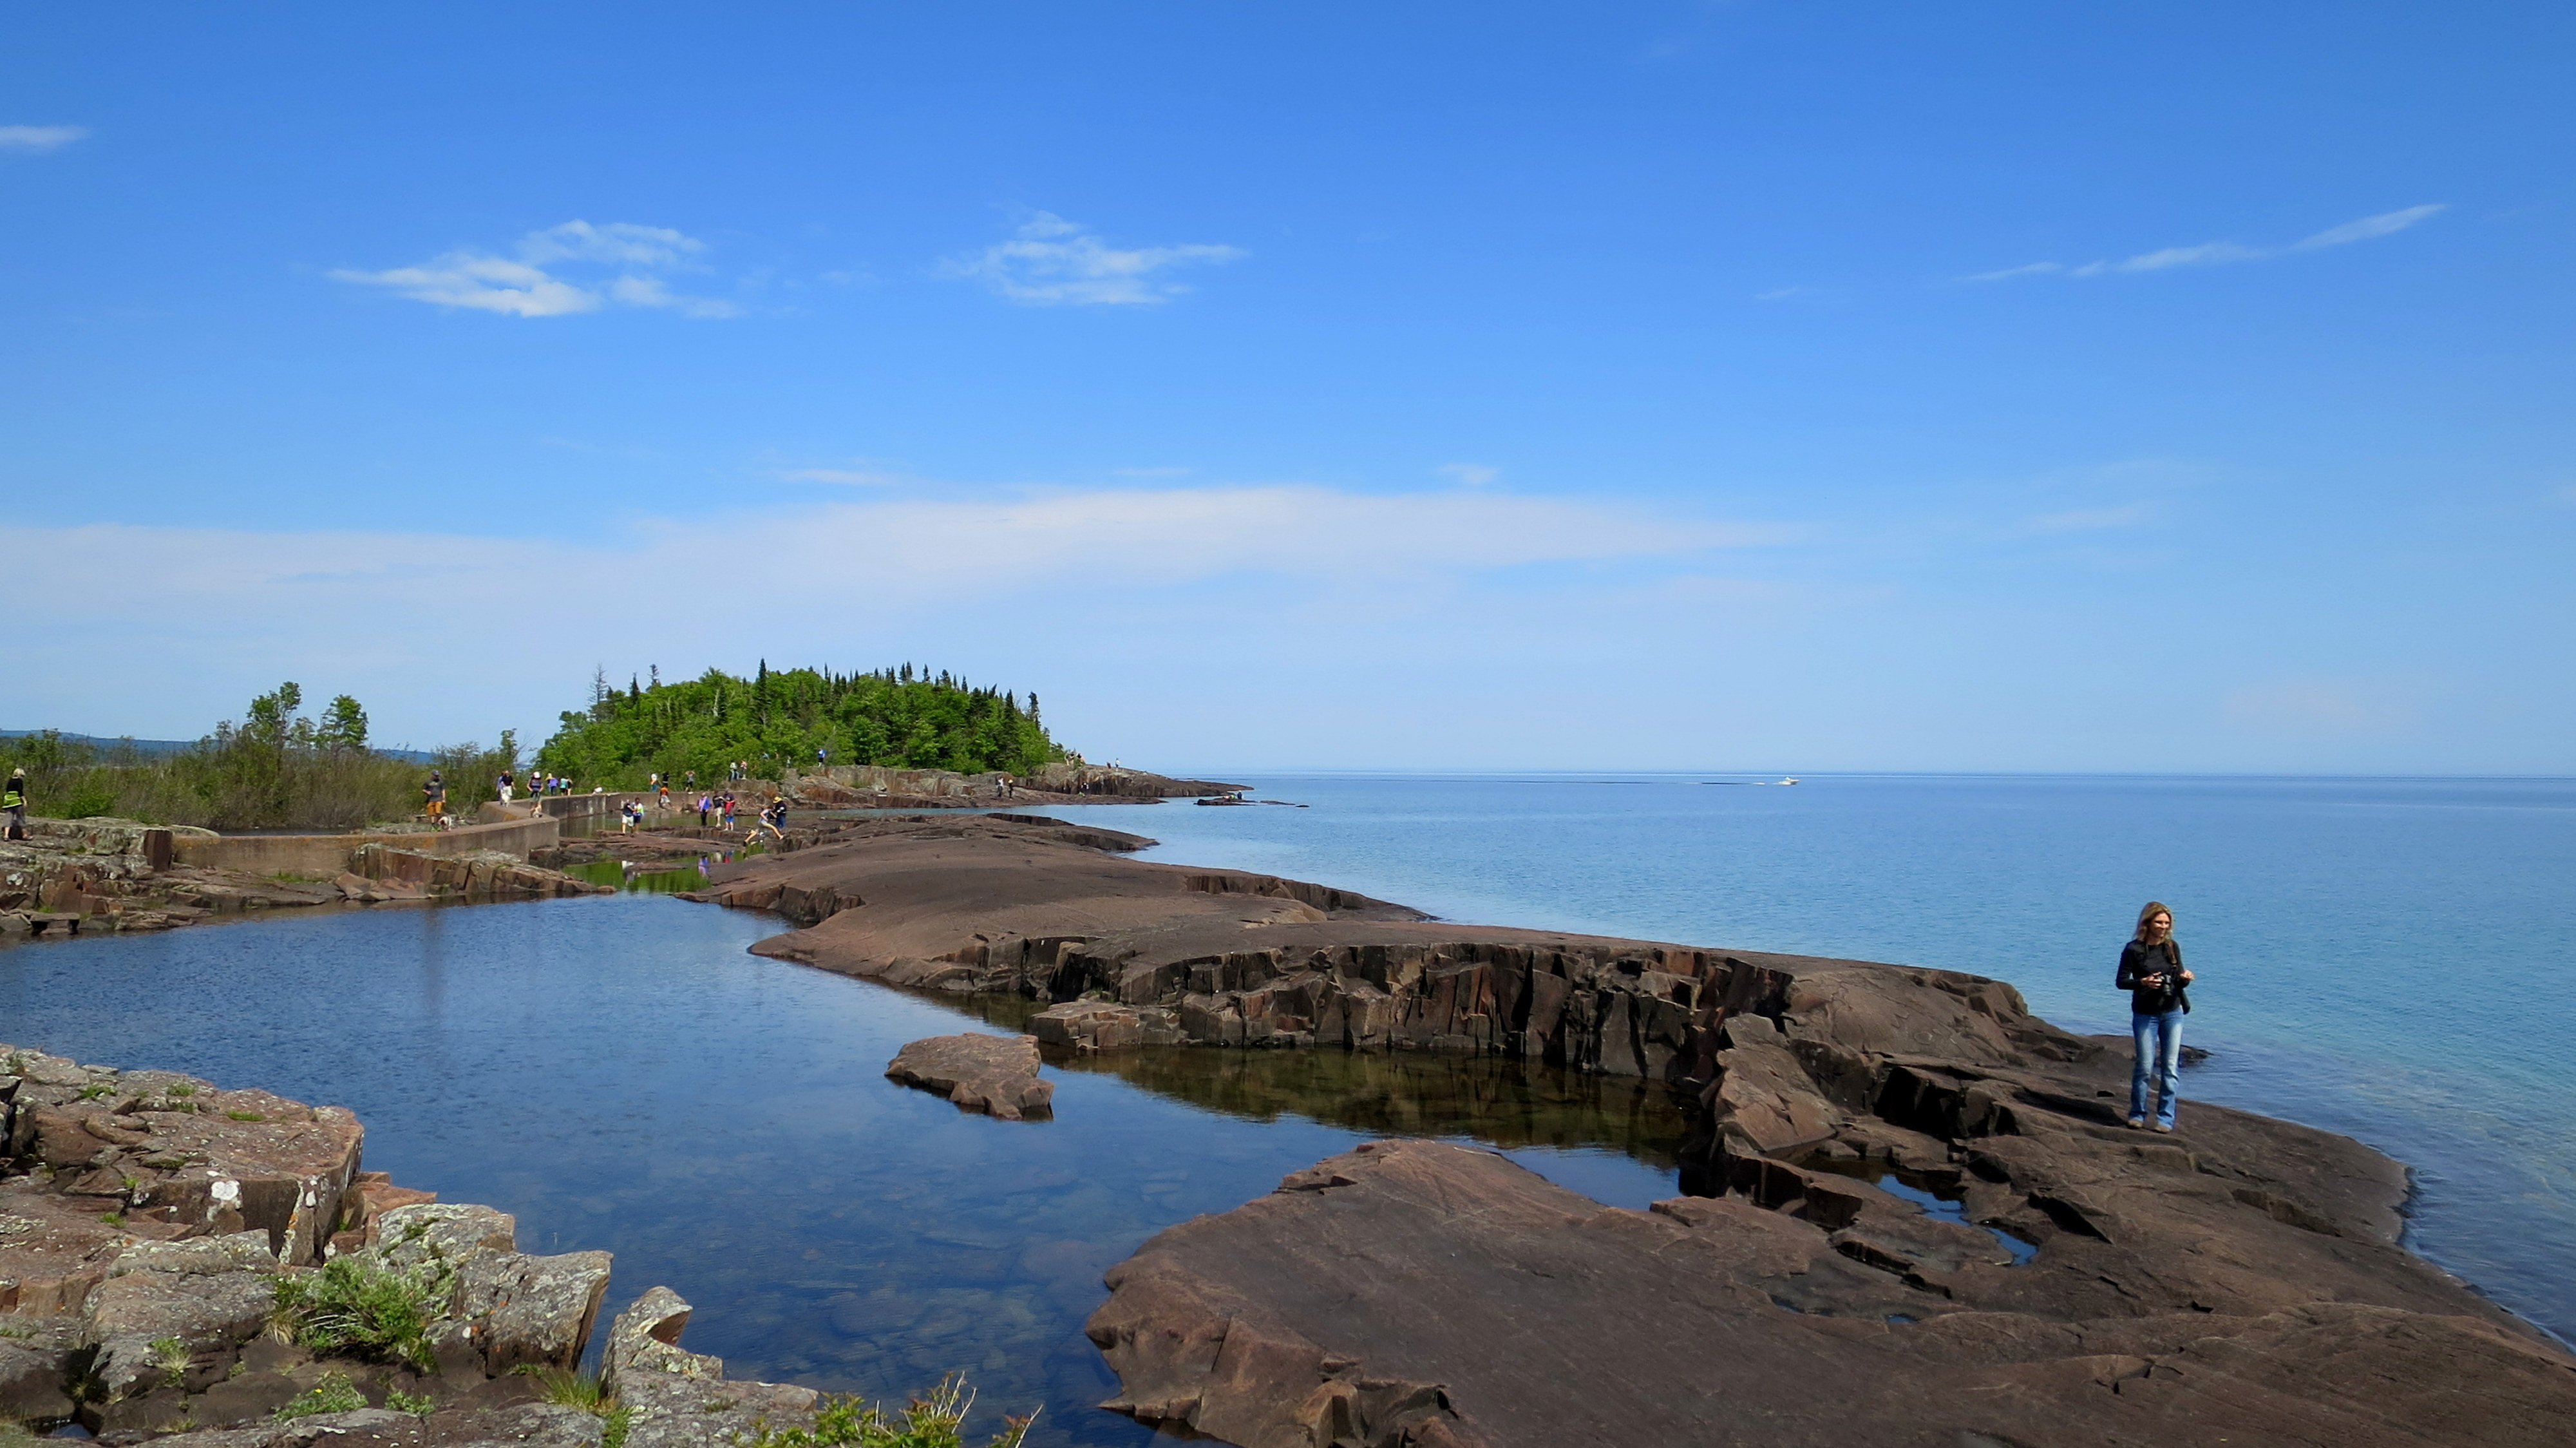 grand marais Get directions, maps, and traffic for grand marais, mn check flight prices and hotel availability for your visit.